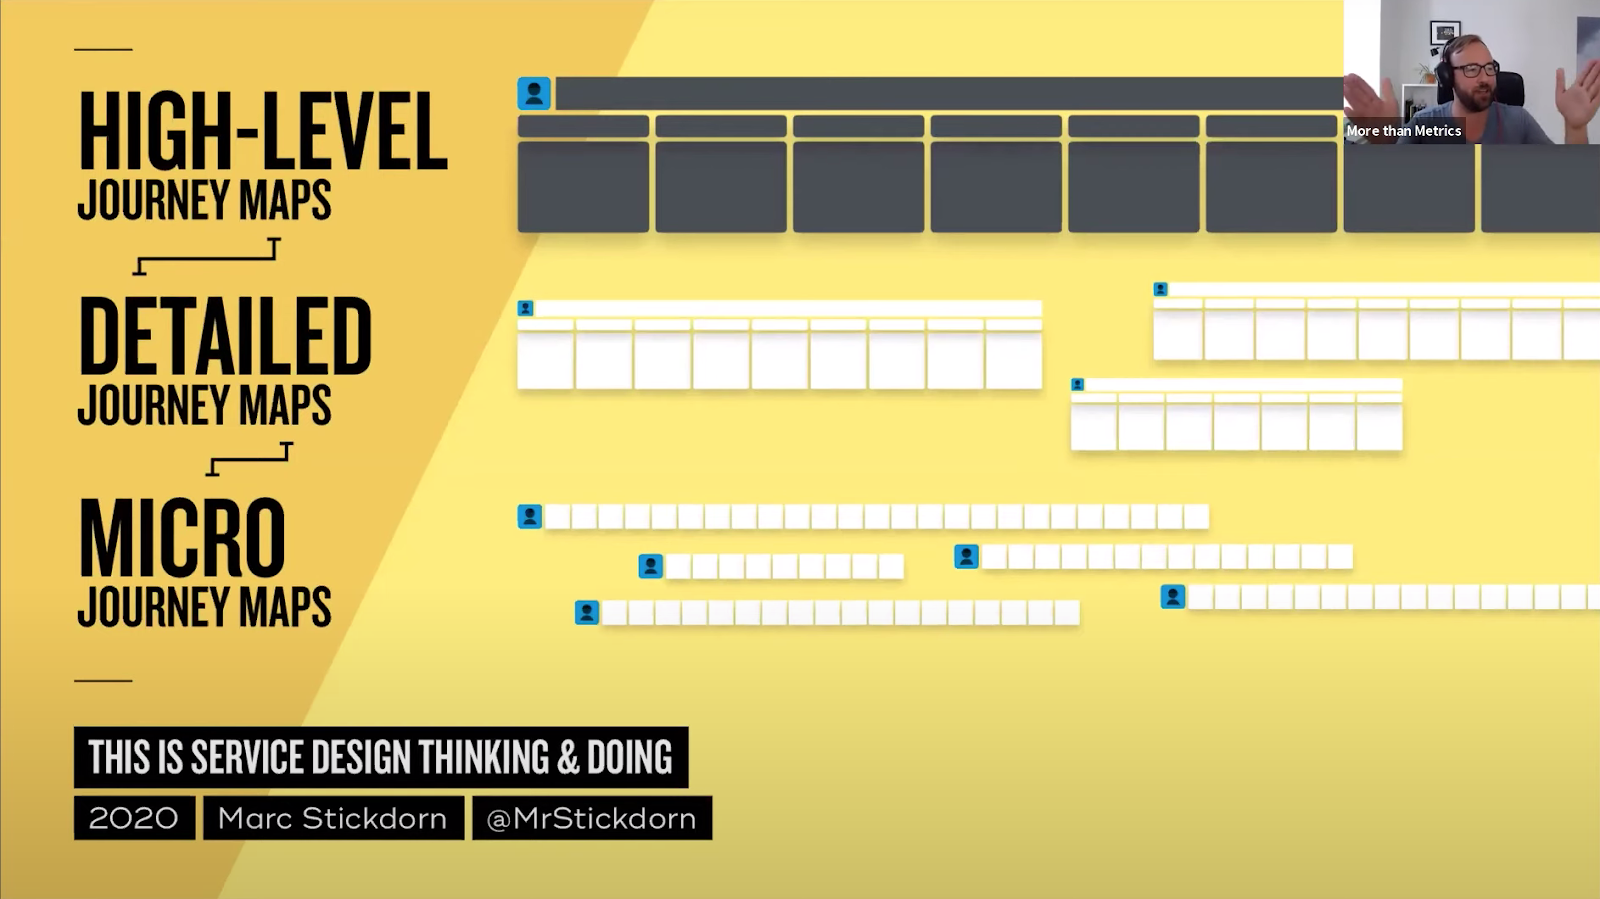 yellow background with visualization of a journey map hierarchy with high-level journey maps, detailed journey maps and micro journey maps